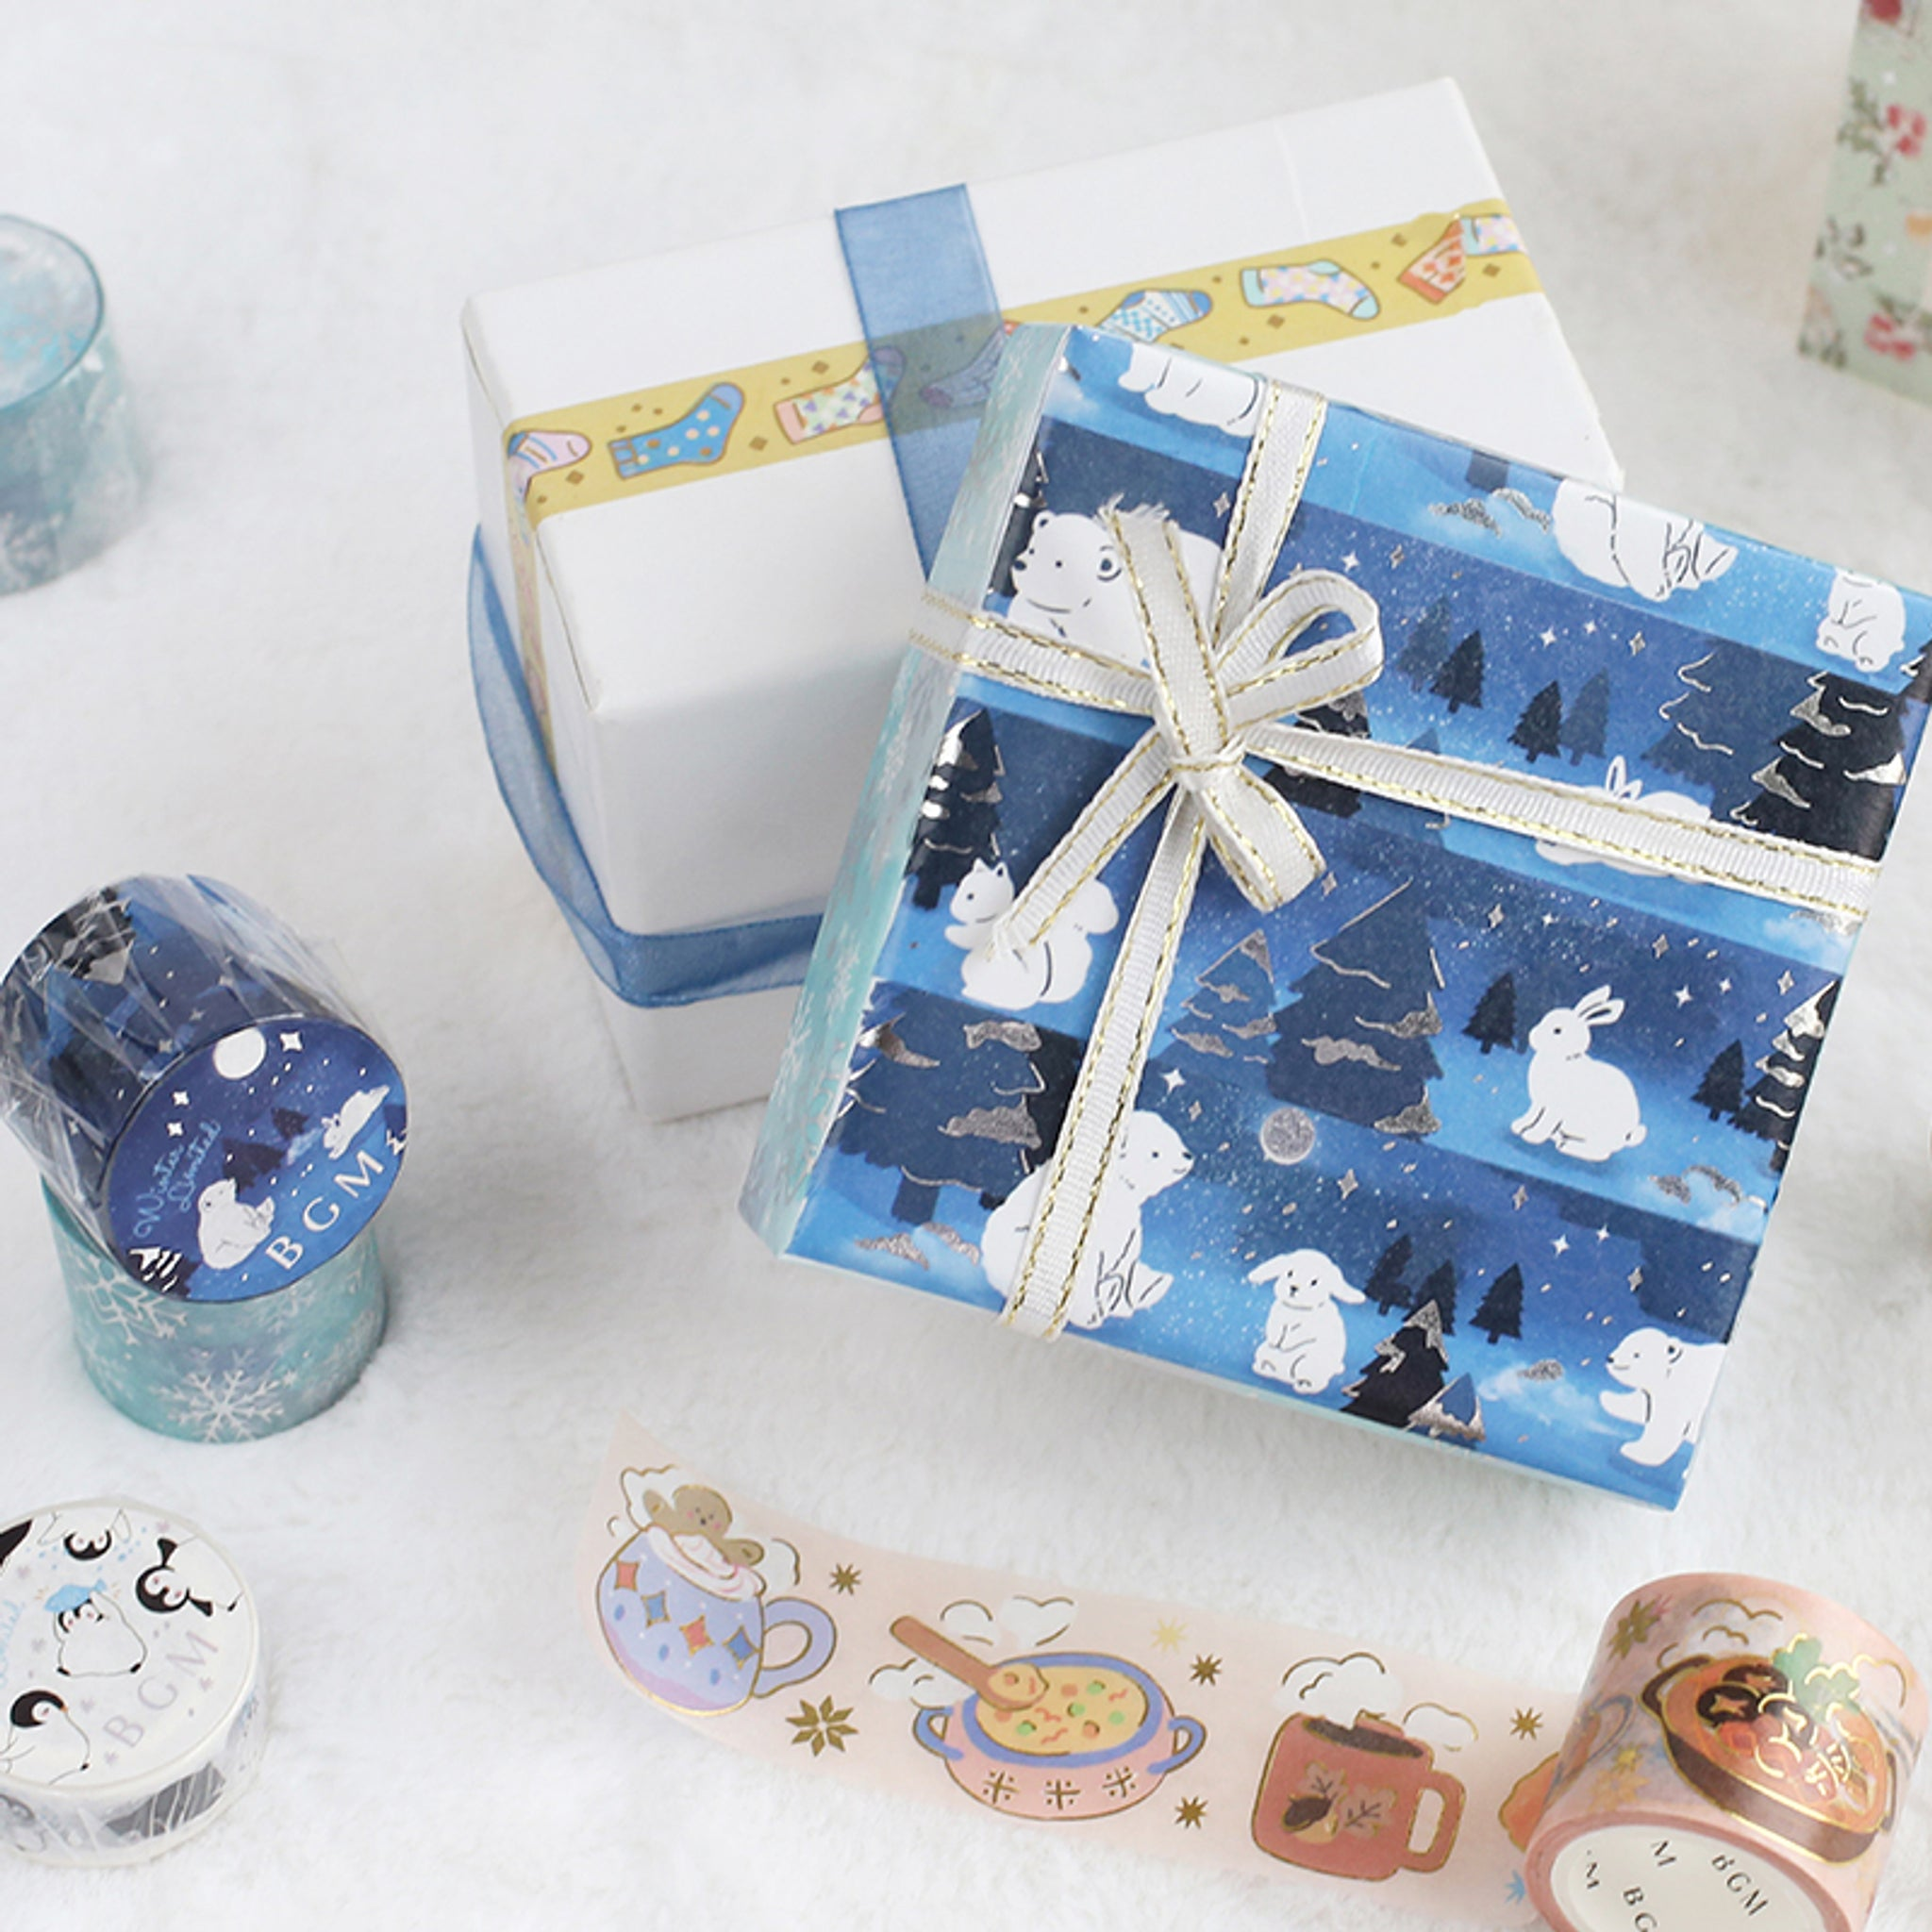 BGM Winter Socks Washi Tape